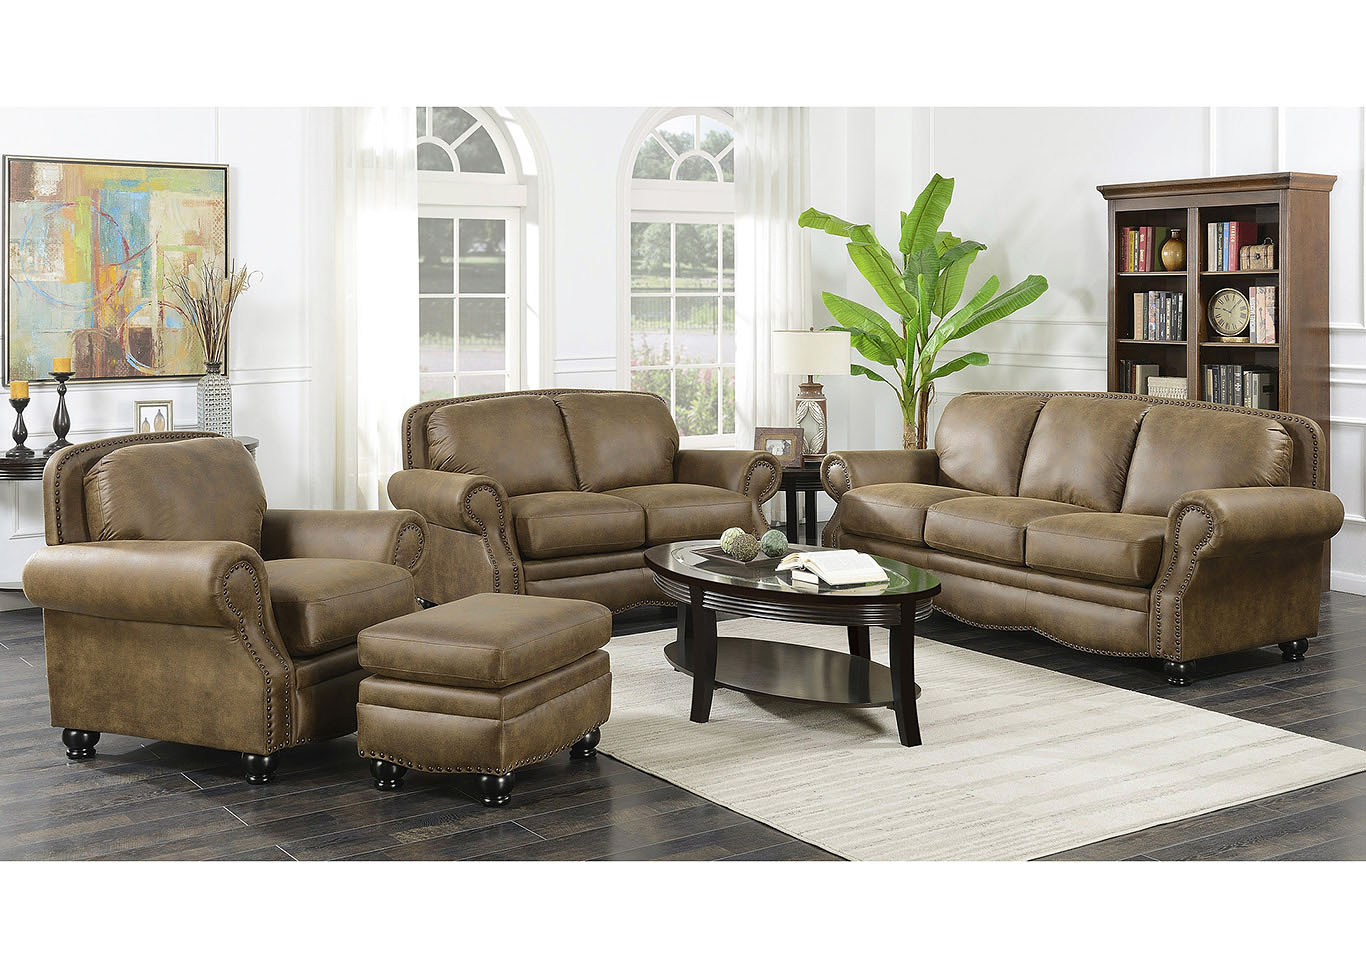 Abrianna Cafe Stationary 4 Piece Living Room Group,Taba Home Furnishings